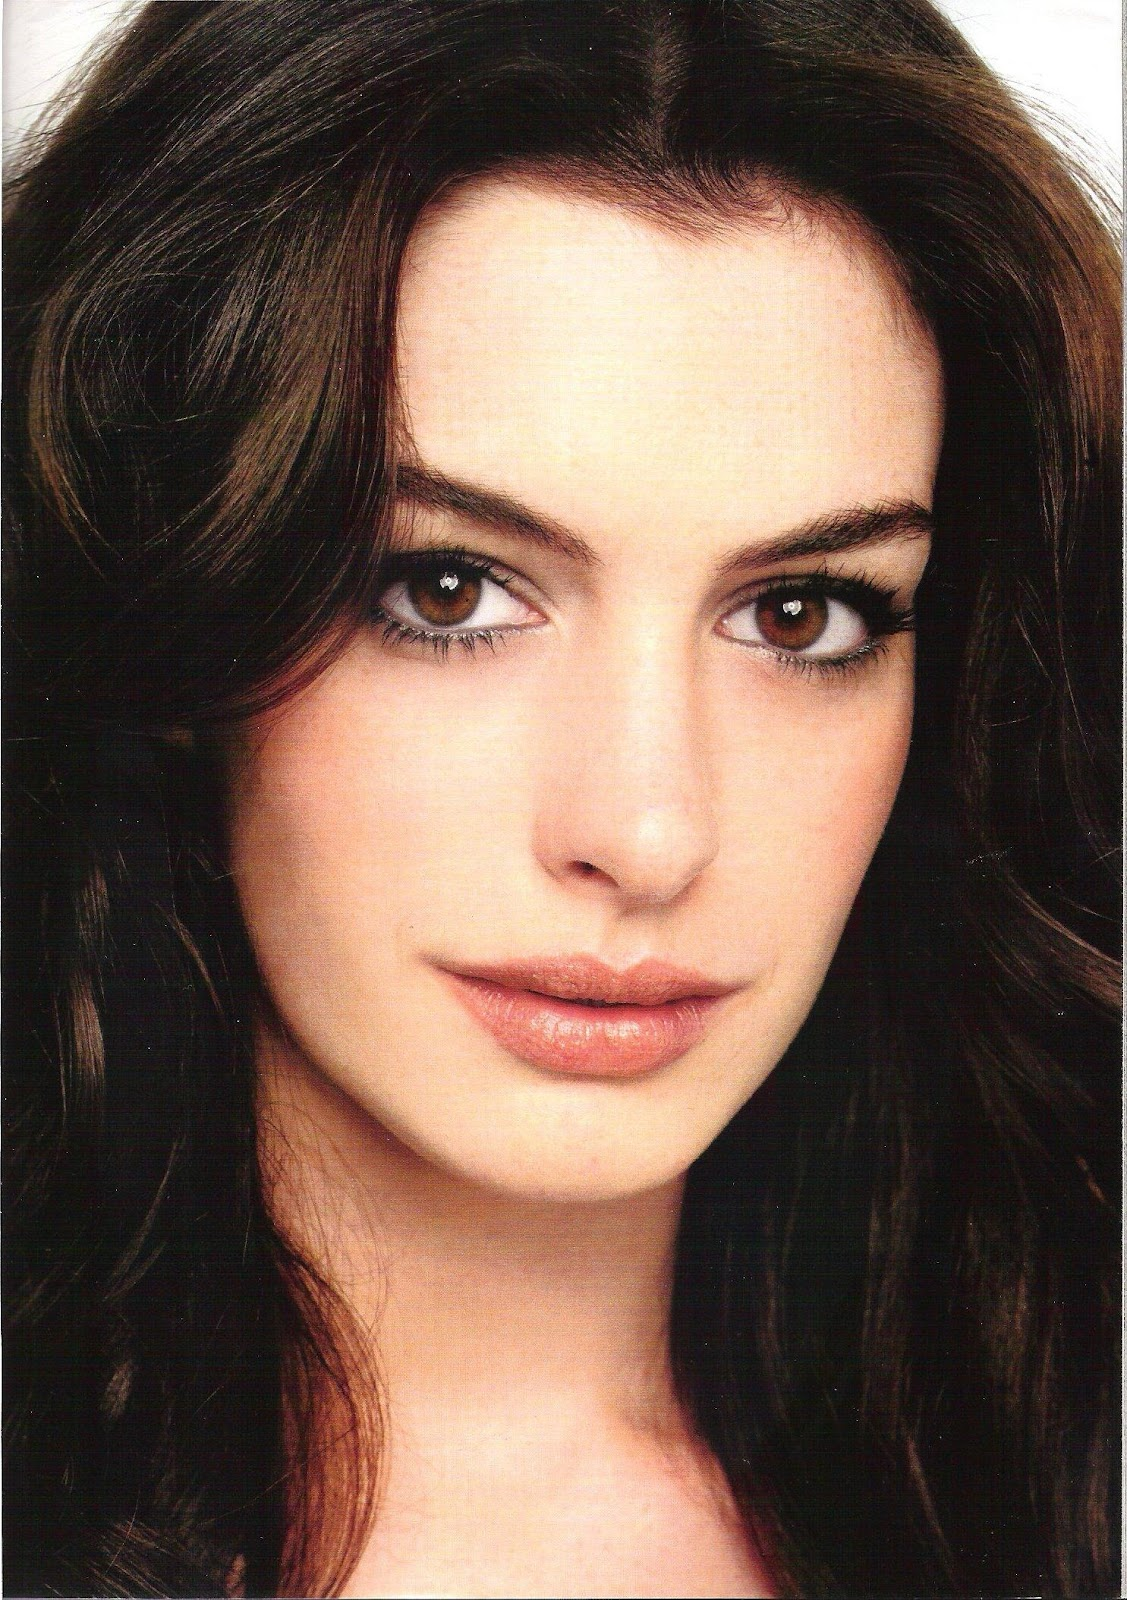 http://4.bp.blogspot.com/-LncJdjrVLw8/Ty-6TGvA8qI/AAAAAAABpRY/YqBaY9Q6hfg/s1600/Anne+Hathaway+hairstyle+pictures+(1503).jpg